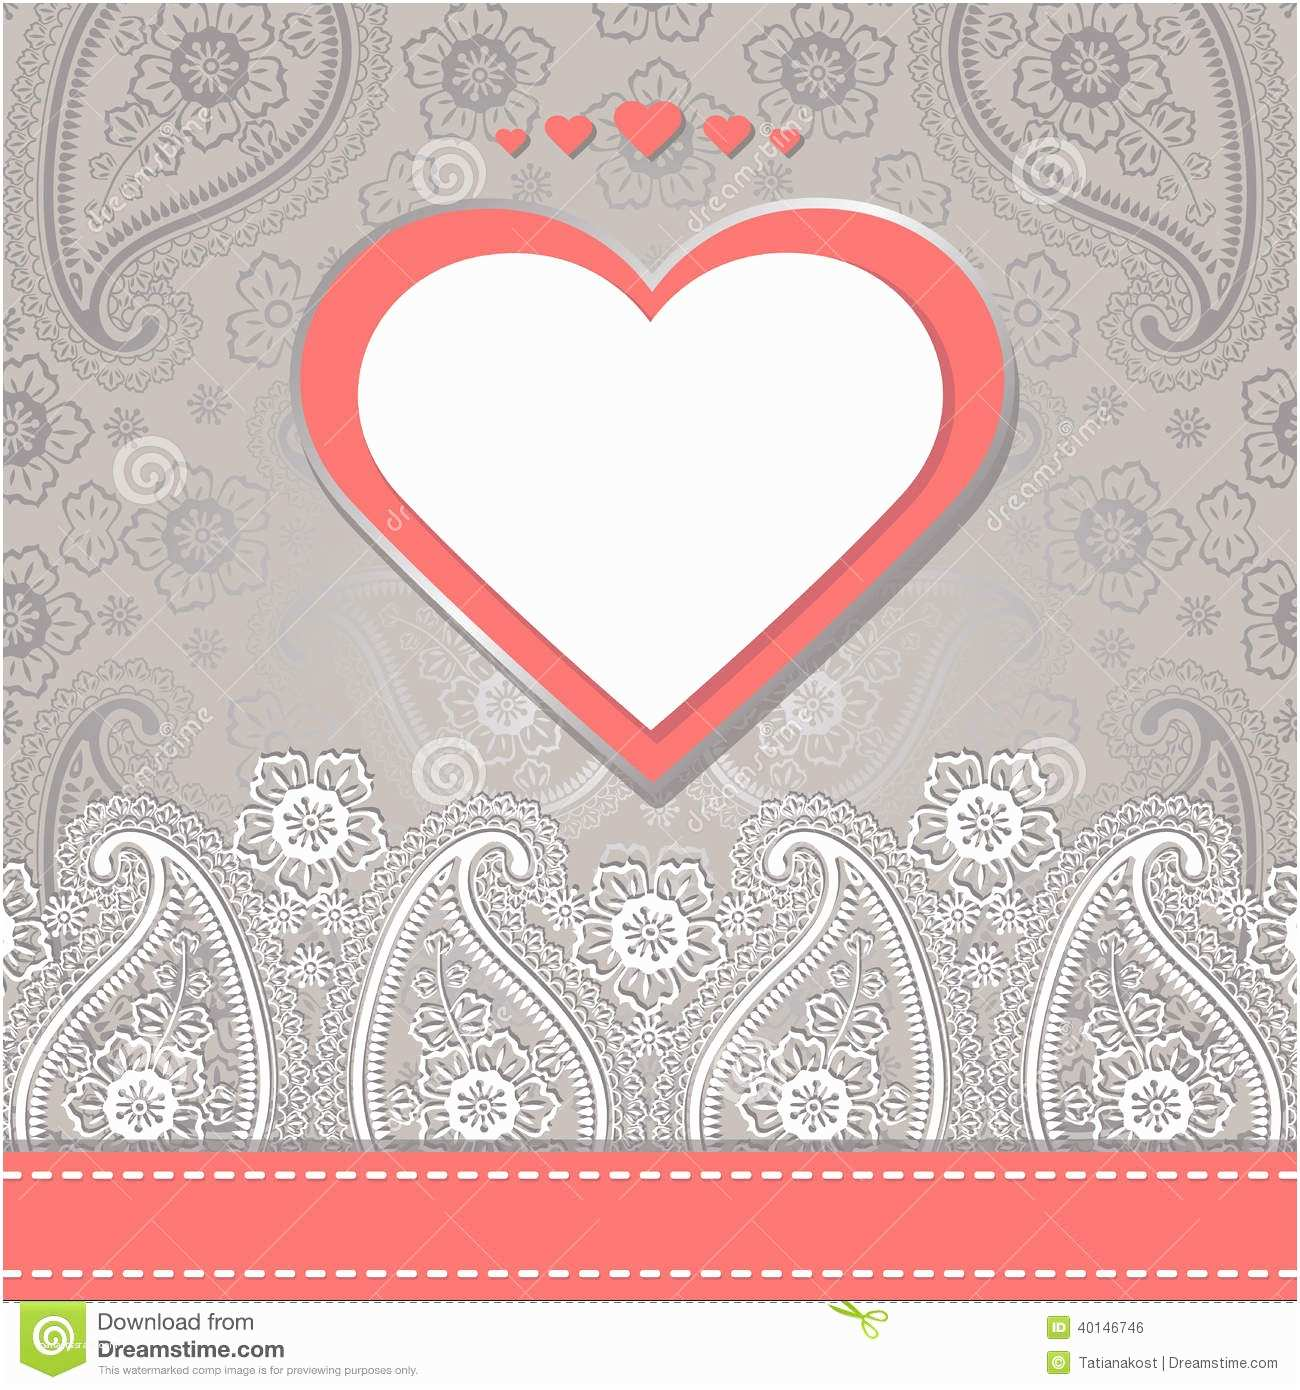 Paisley Wedding Invitation Template Cute Design Template Paisley Border Lace and Hearts Stock